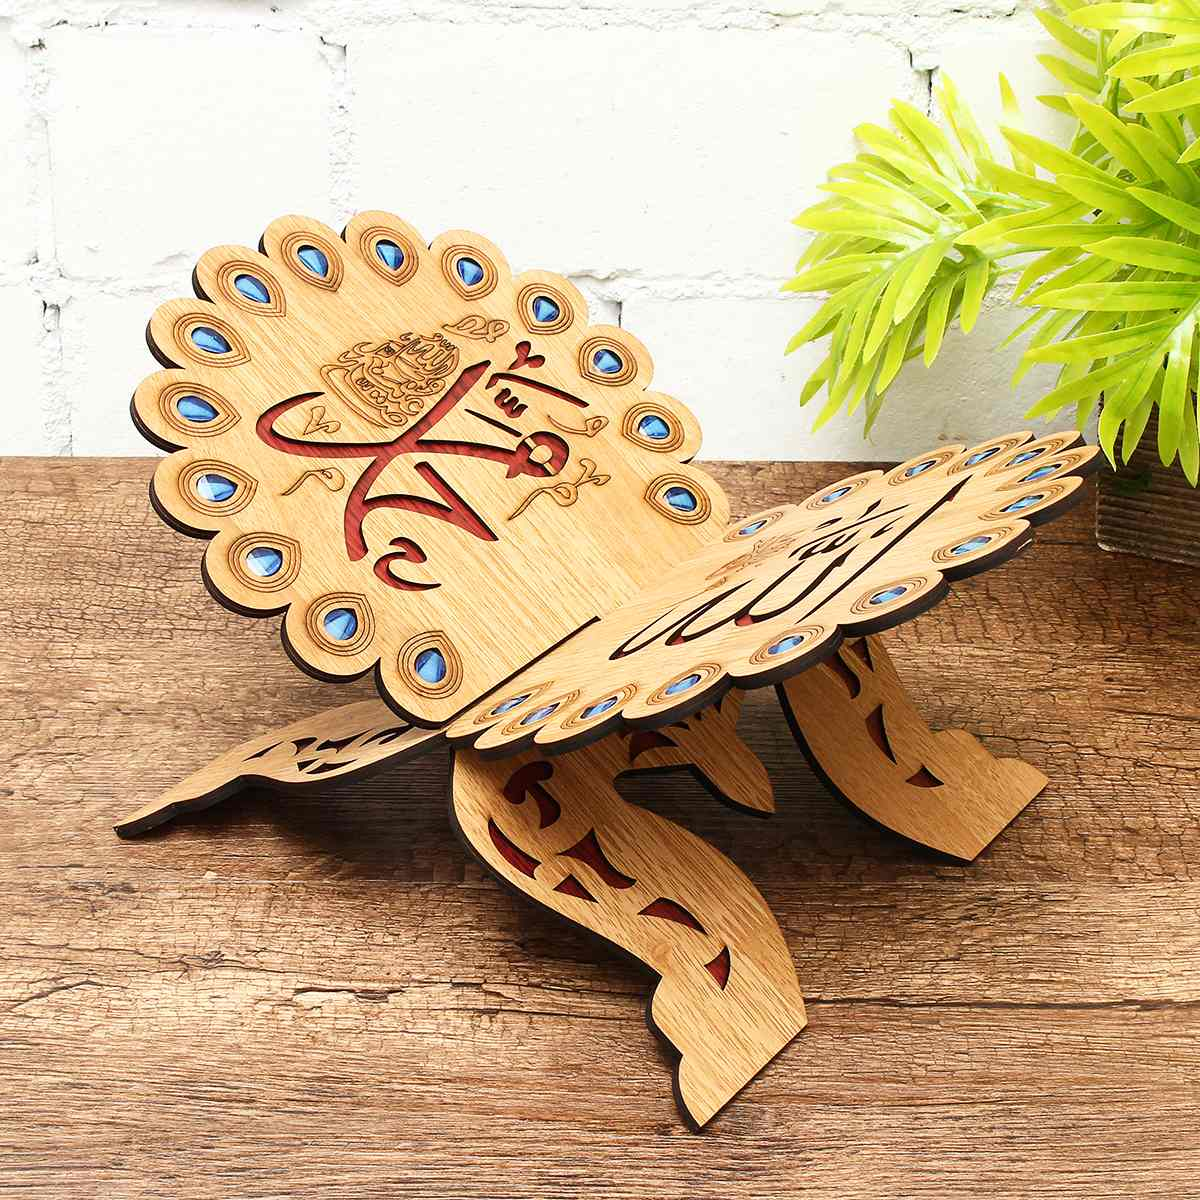 33*23/30*20cm Removable Wooden Book Stand Holder Quran Muslim Ramadan Allah Islamic Gift Handmade Wood Decor Lightweight Sale Price Bookends Desk Accessories & Organizer